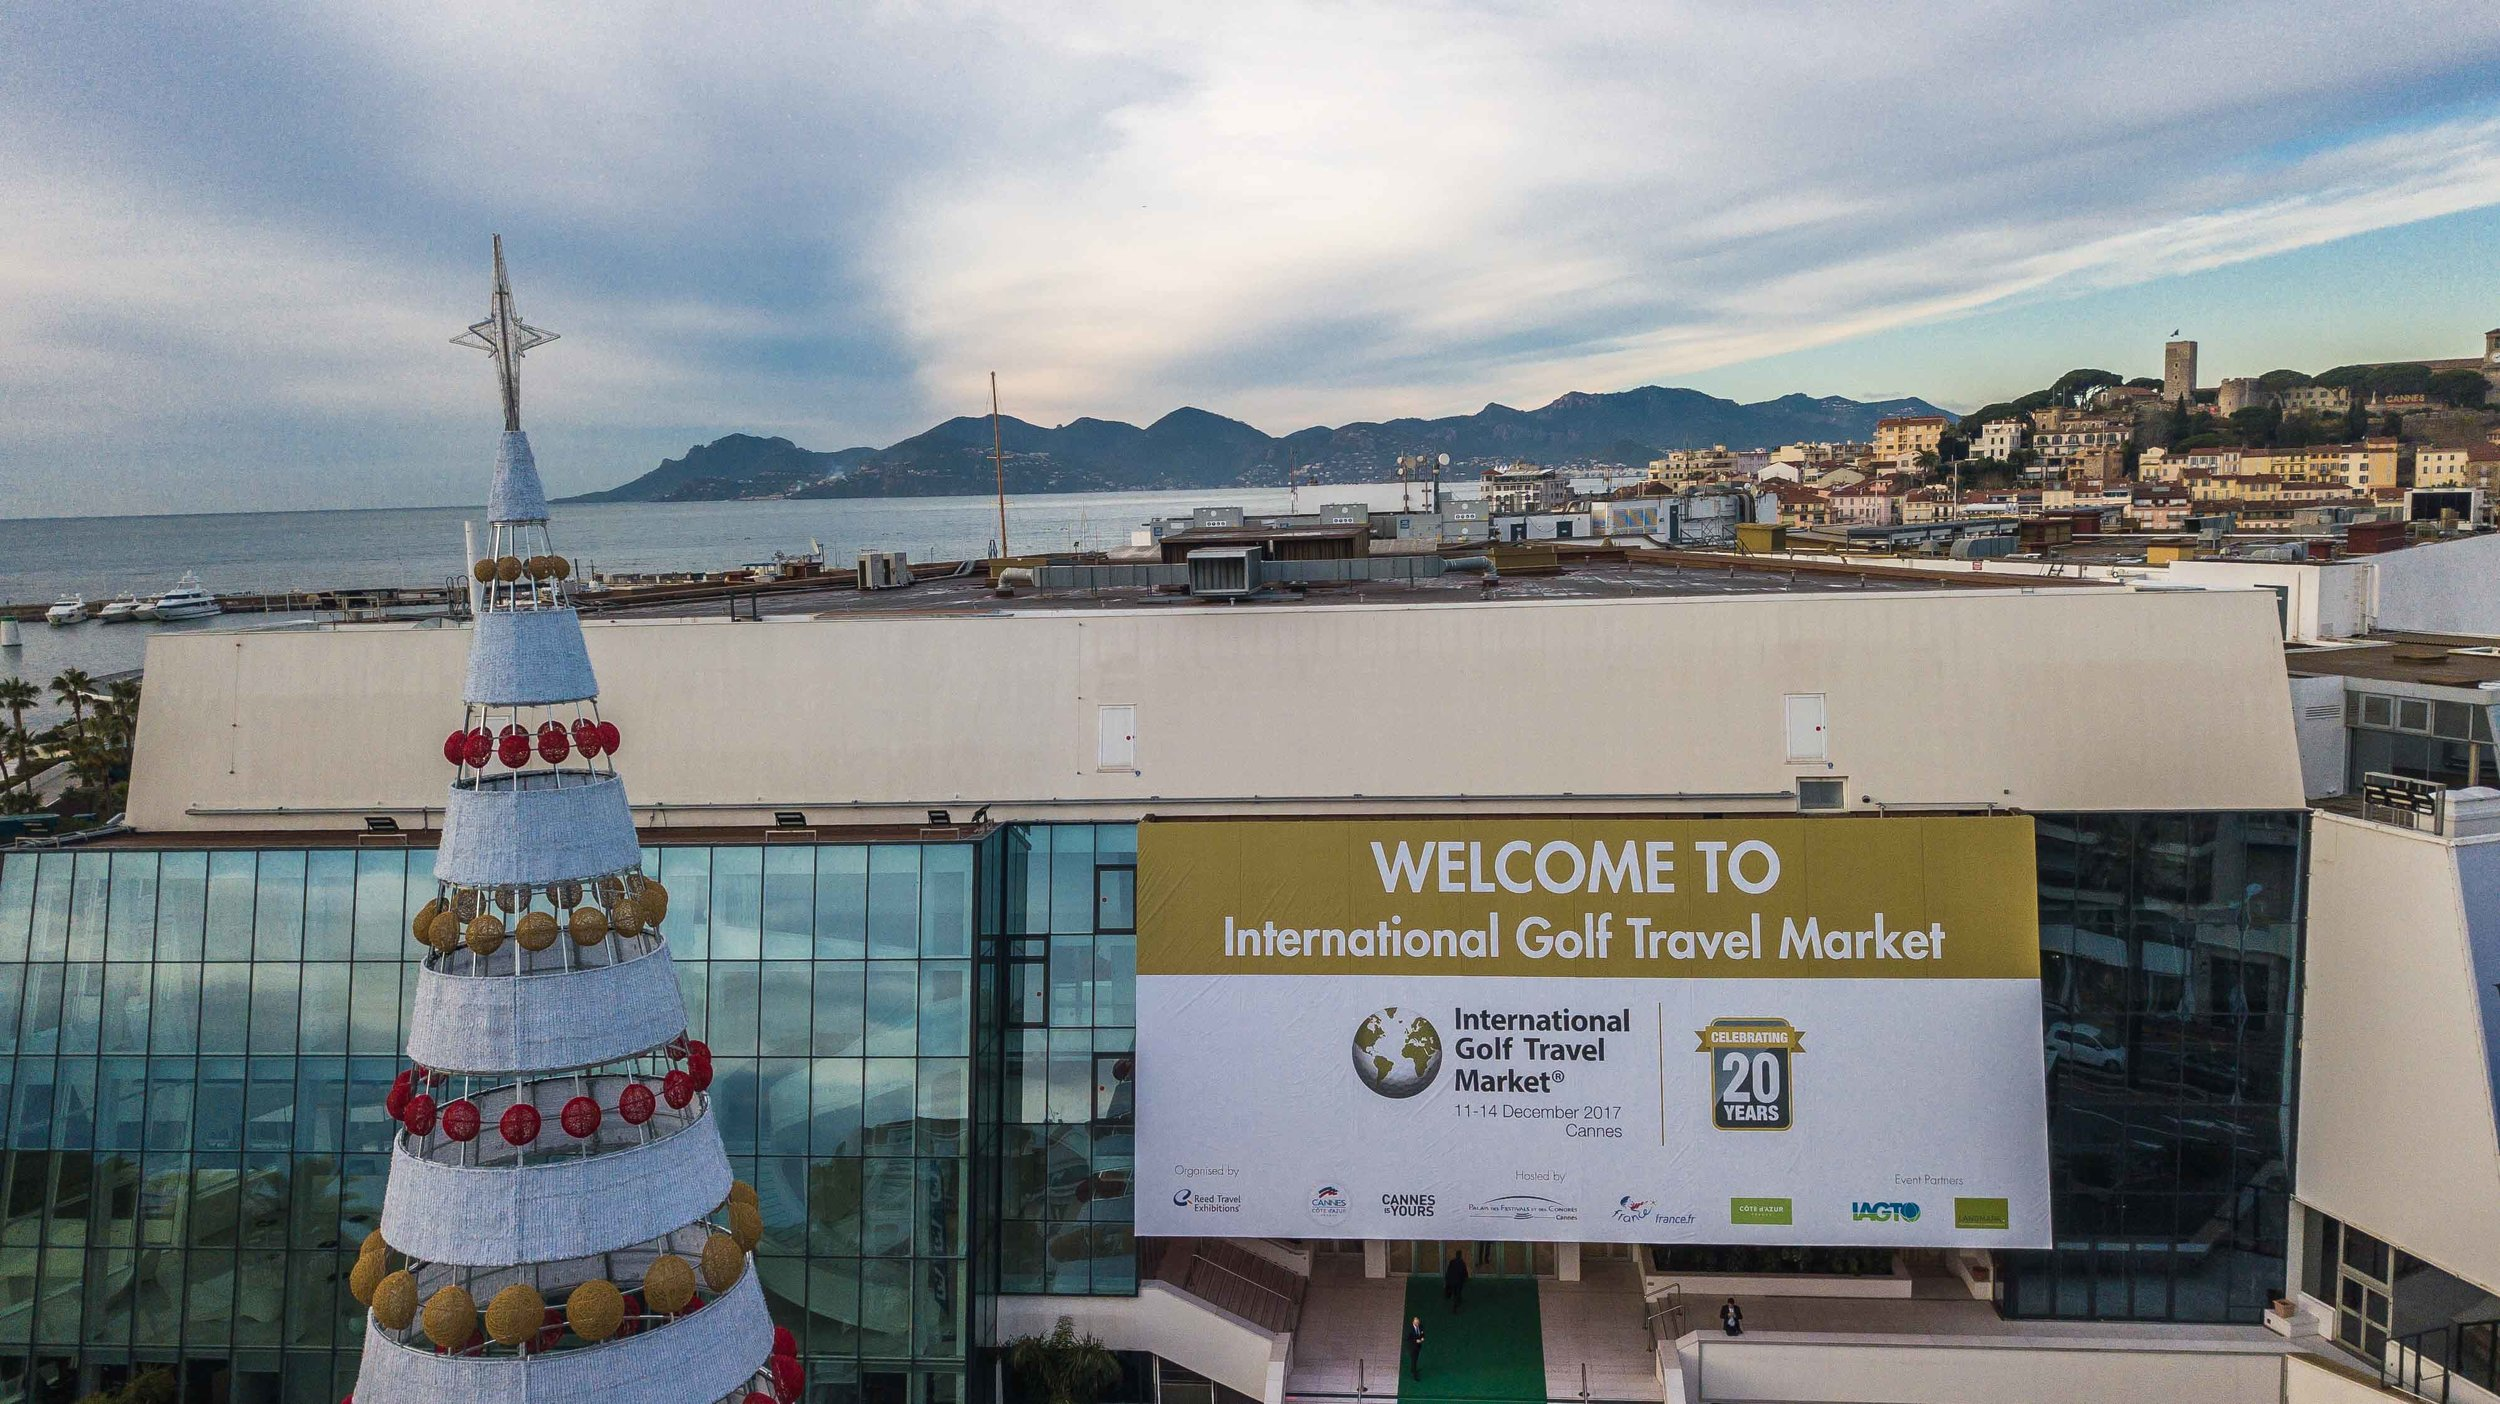 The IGTM took place in the The Palais des Festivals et des Congrès, the same venue as the Cannes Film Festival